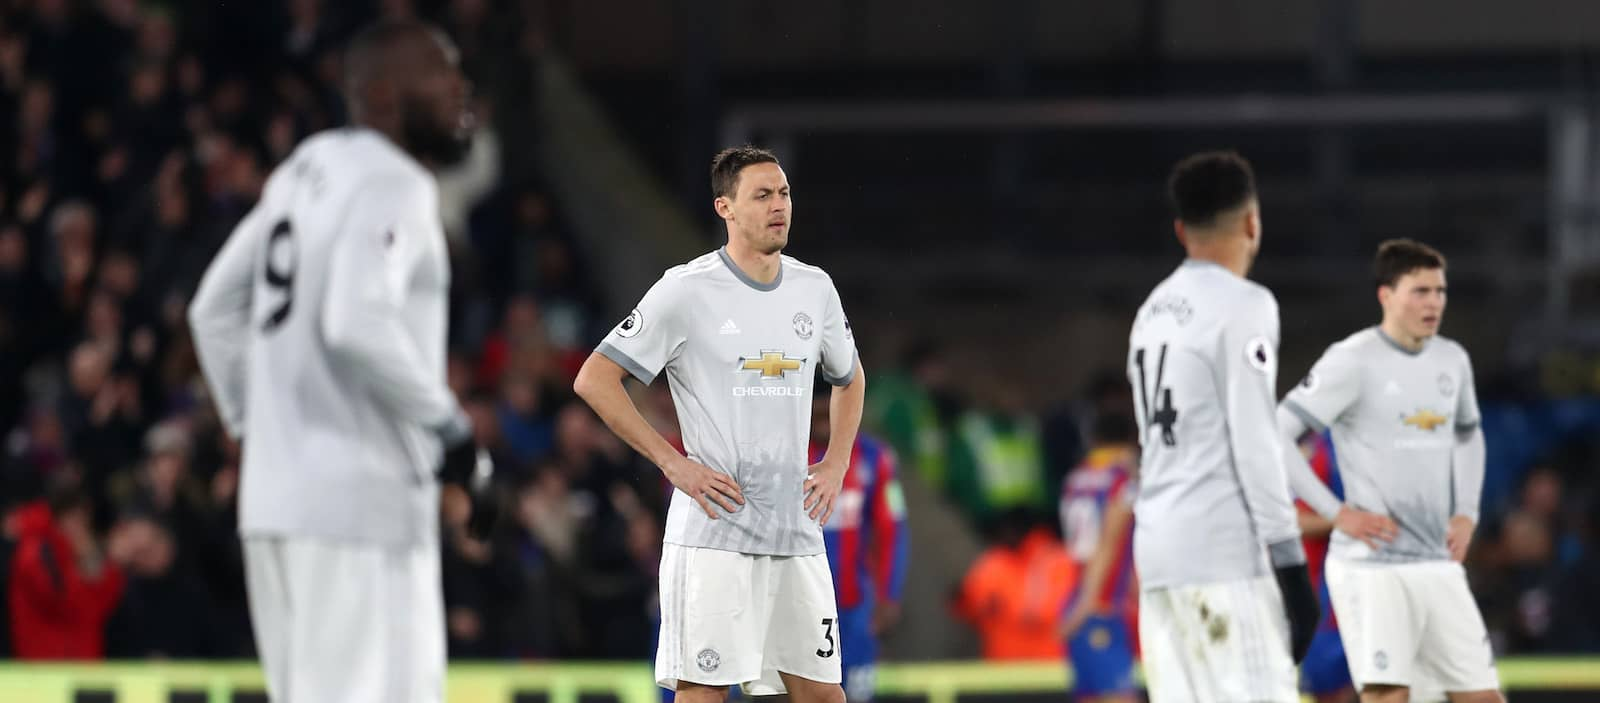 Nemanja Matic hails Scott McTominay's progress following Liverpool win